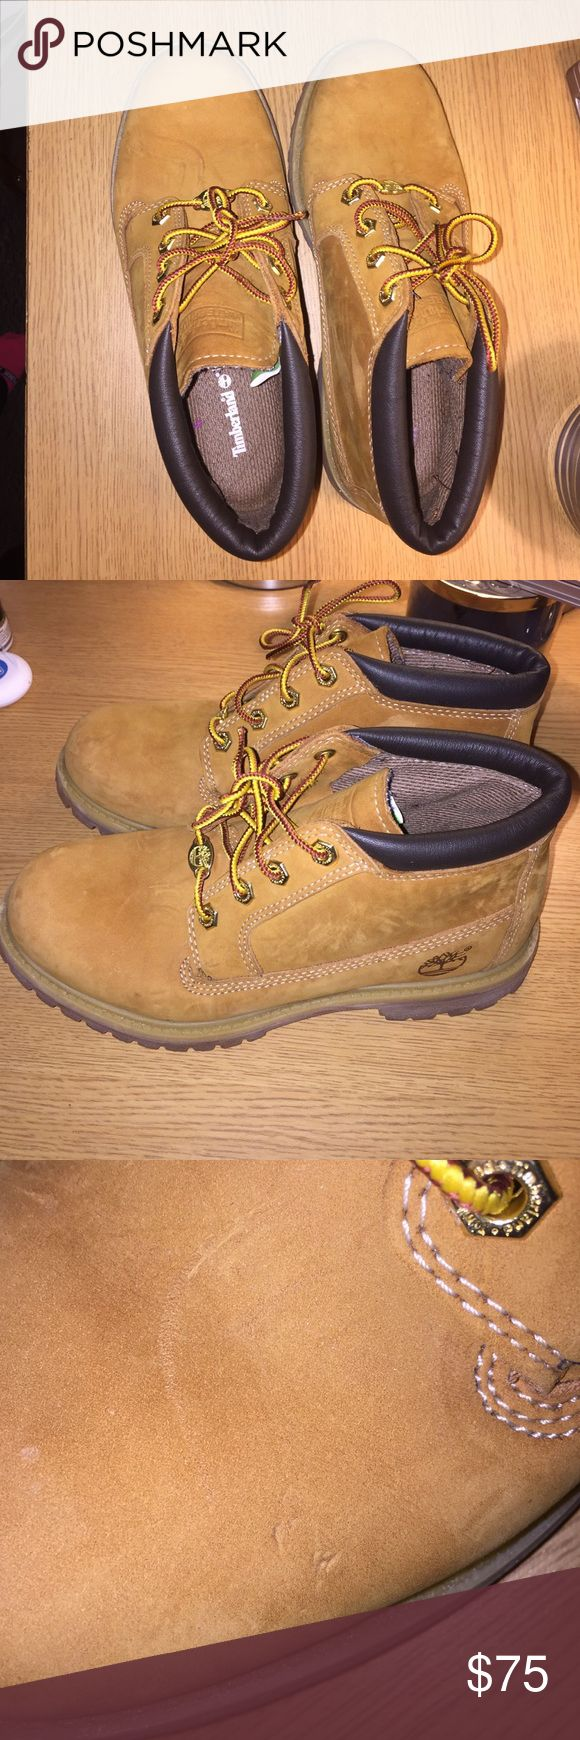 Women's Timberland Nellie Women's Timberland Nellie size 7, worn a few times, good condition with one small mark Timberland Shoes Winter & Rain Boots